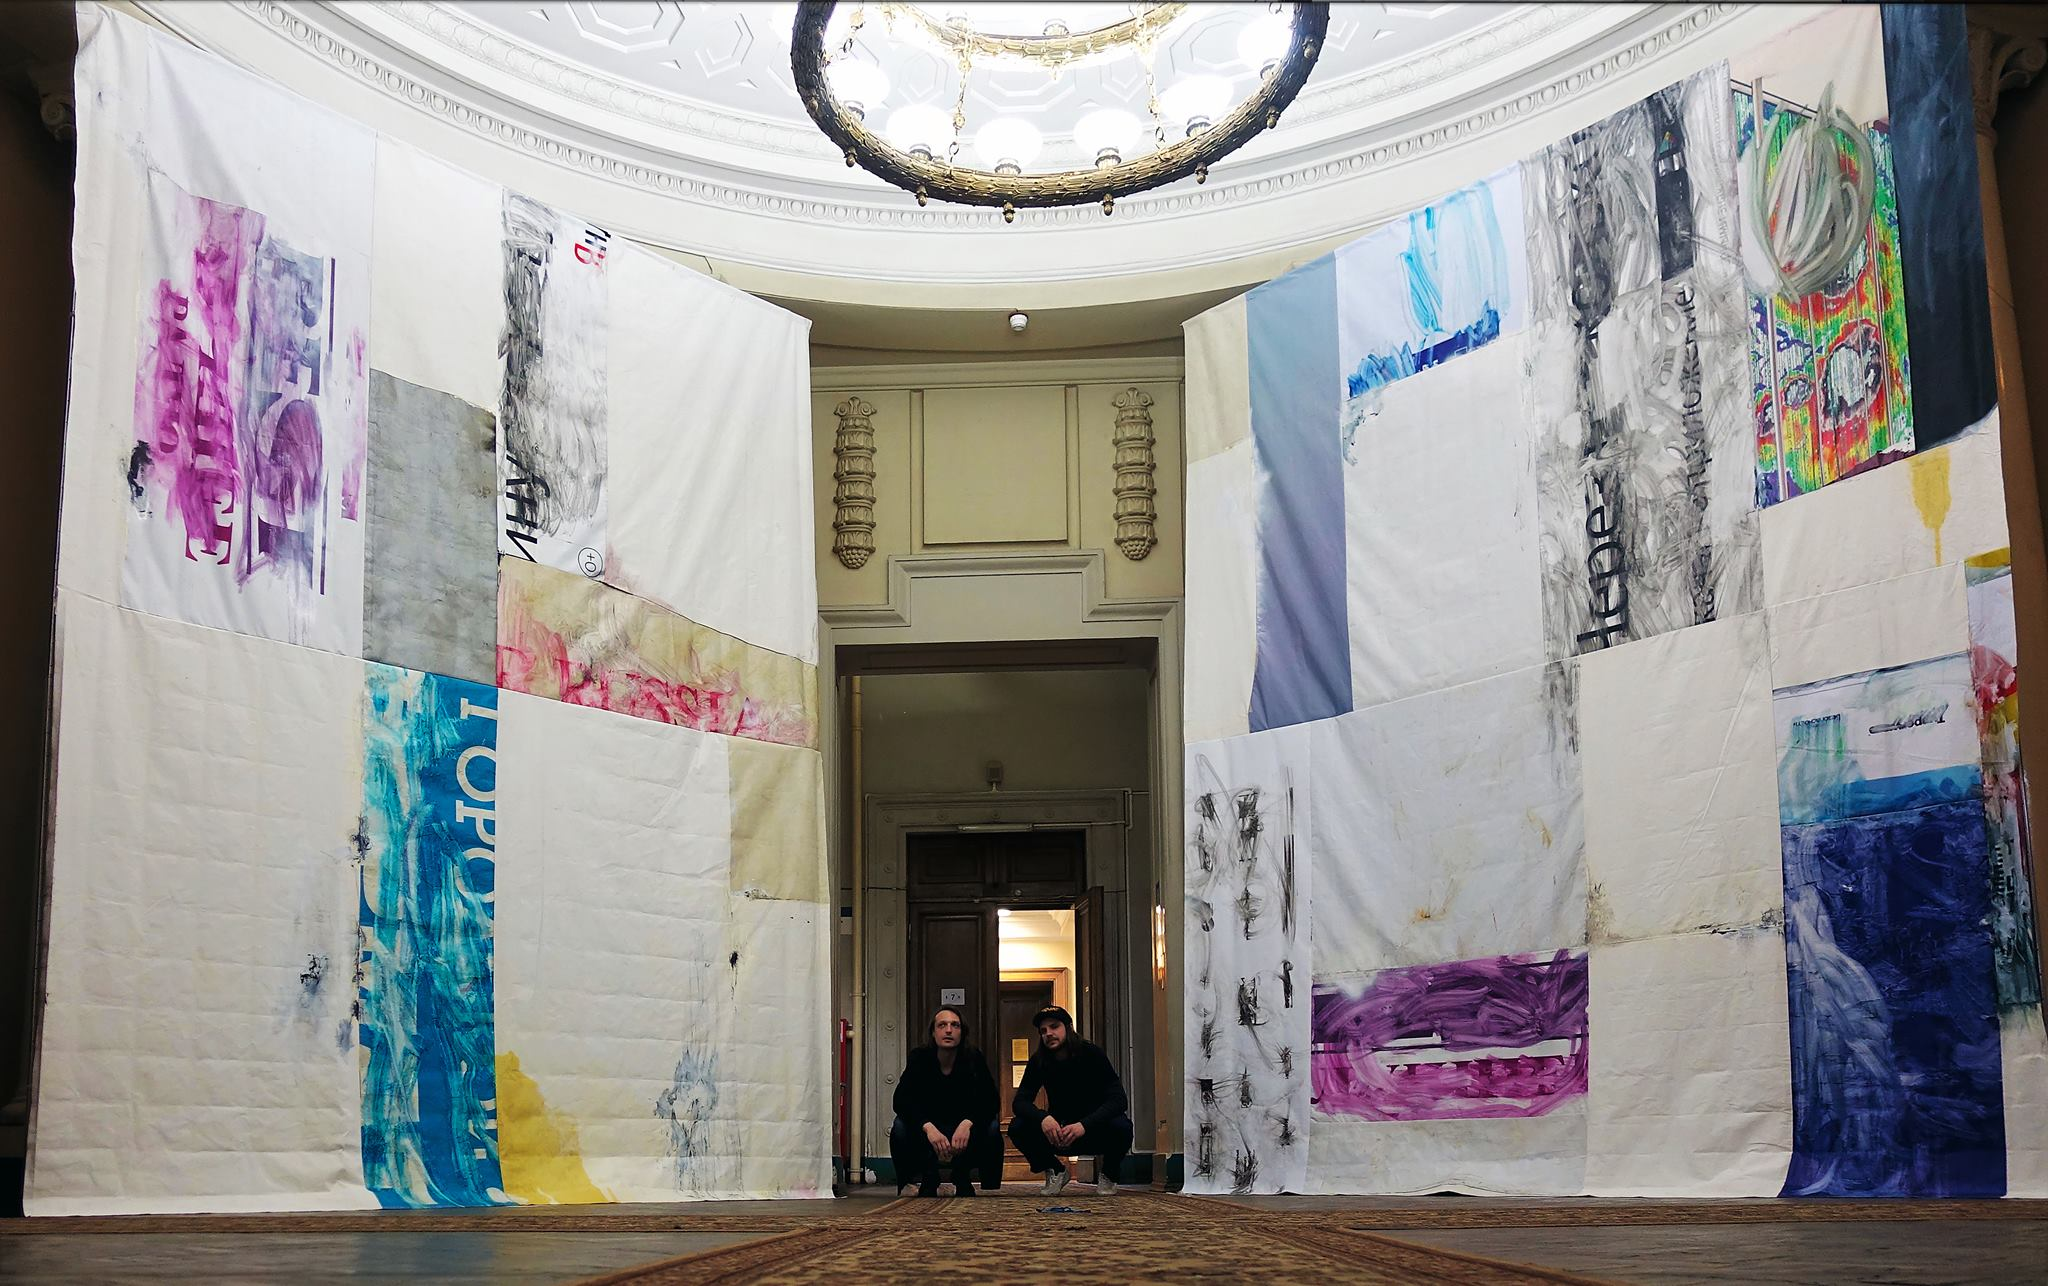 Works from A Pleat on the Curtain. From the exhibition of nominees of the Innovation State Prize 2018, Lenin State Library, Moscow